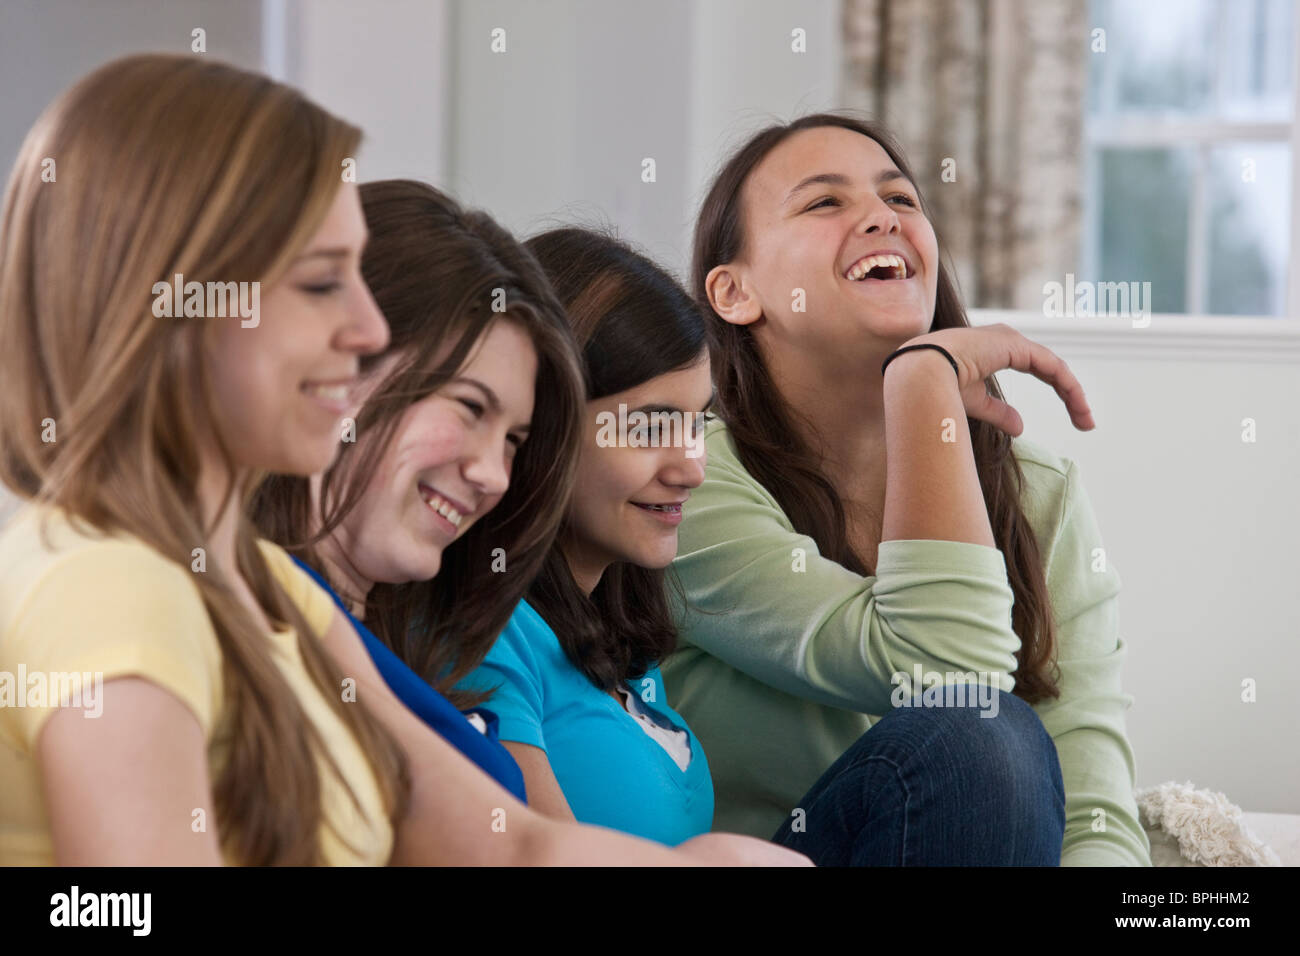 friend single hispanic girls After ernest baker's essay about interracial relationships, the reality of dating white women when you're black, ran on gawker earlier this month we received hundreds of comments and emails objecting to, agreeing with, or otherwise responding to baker this week, we're publishing some of those .